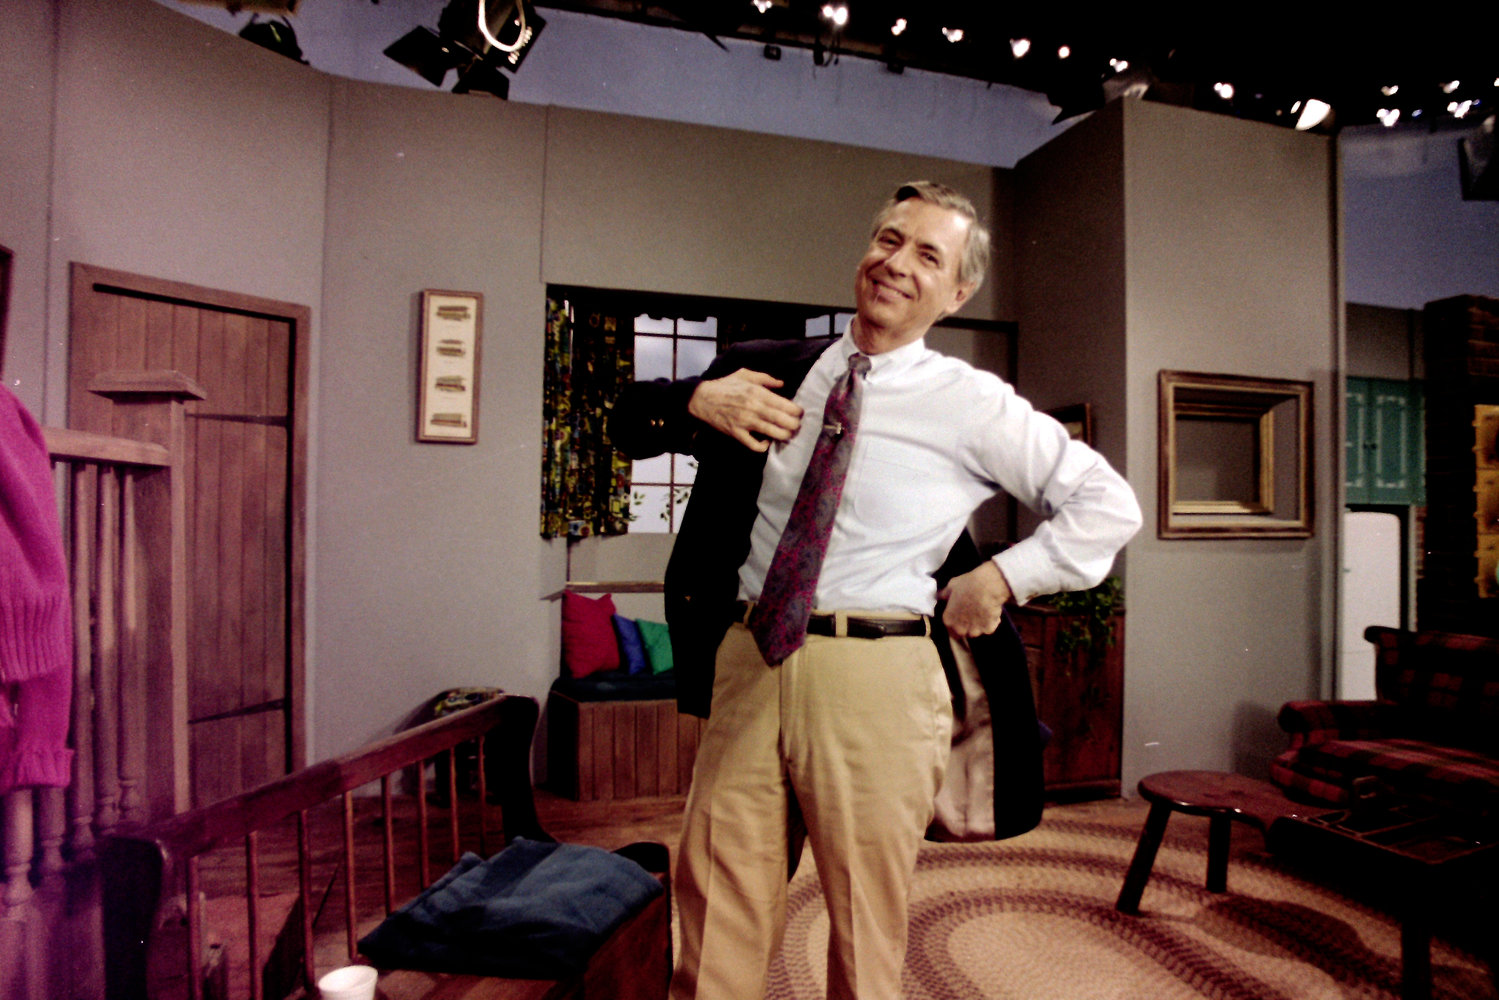 This June 8, 1993 file photo shows Fred Rogers between takes on the set of his television program Mr. Rogers' Neighborhood in Pittsburgh. (AP Photo/Gene J. Puskar)